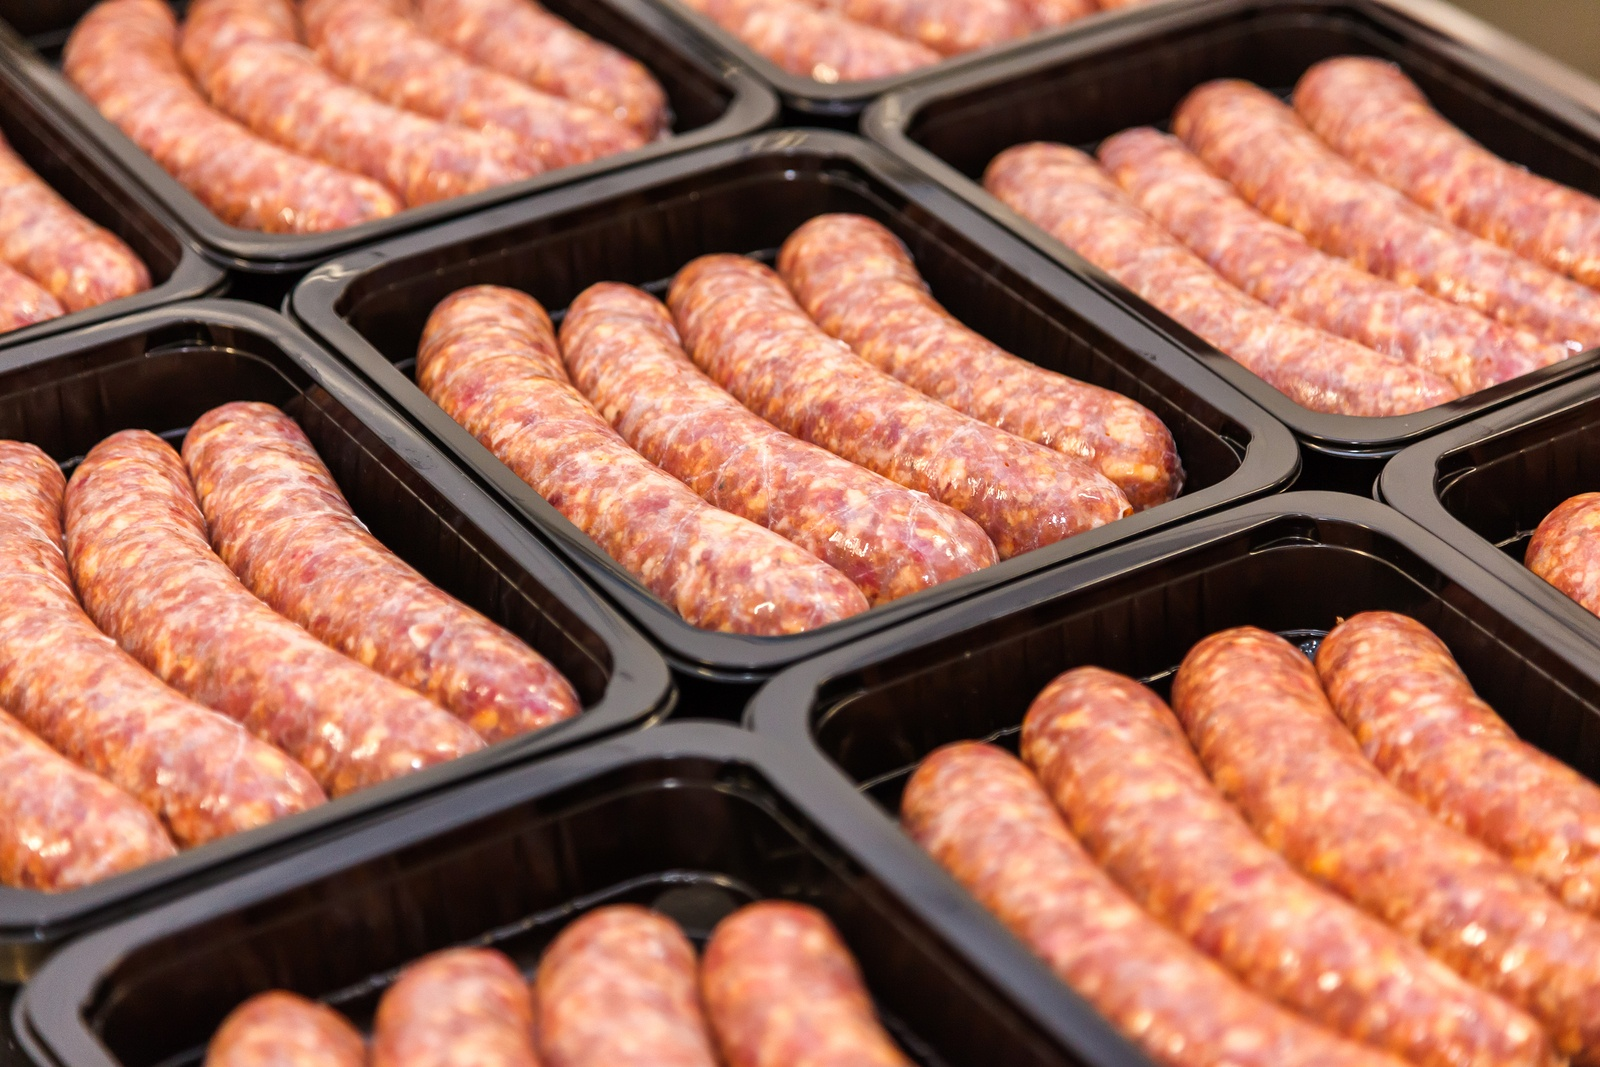 Bigstock  125354305 - Raw Meat Sausages In Packing Box